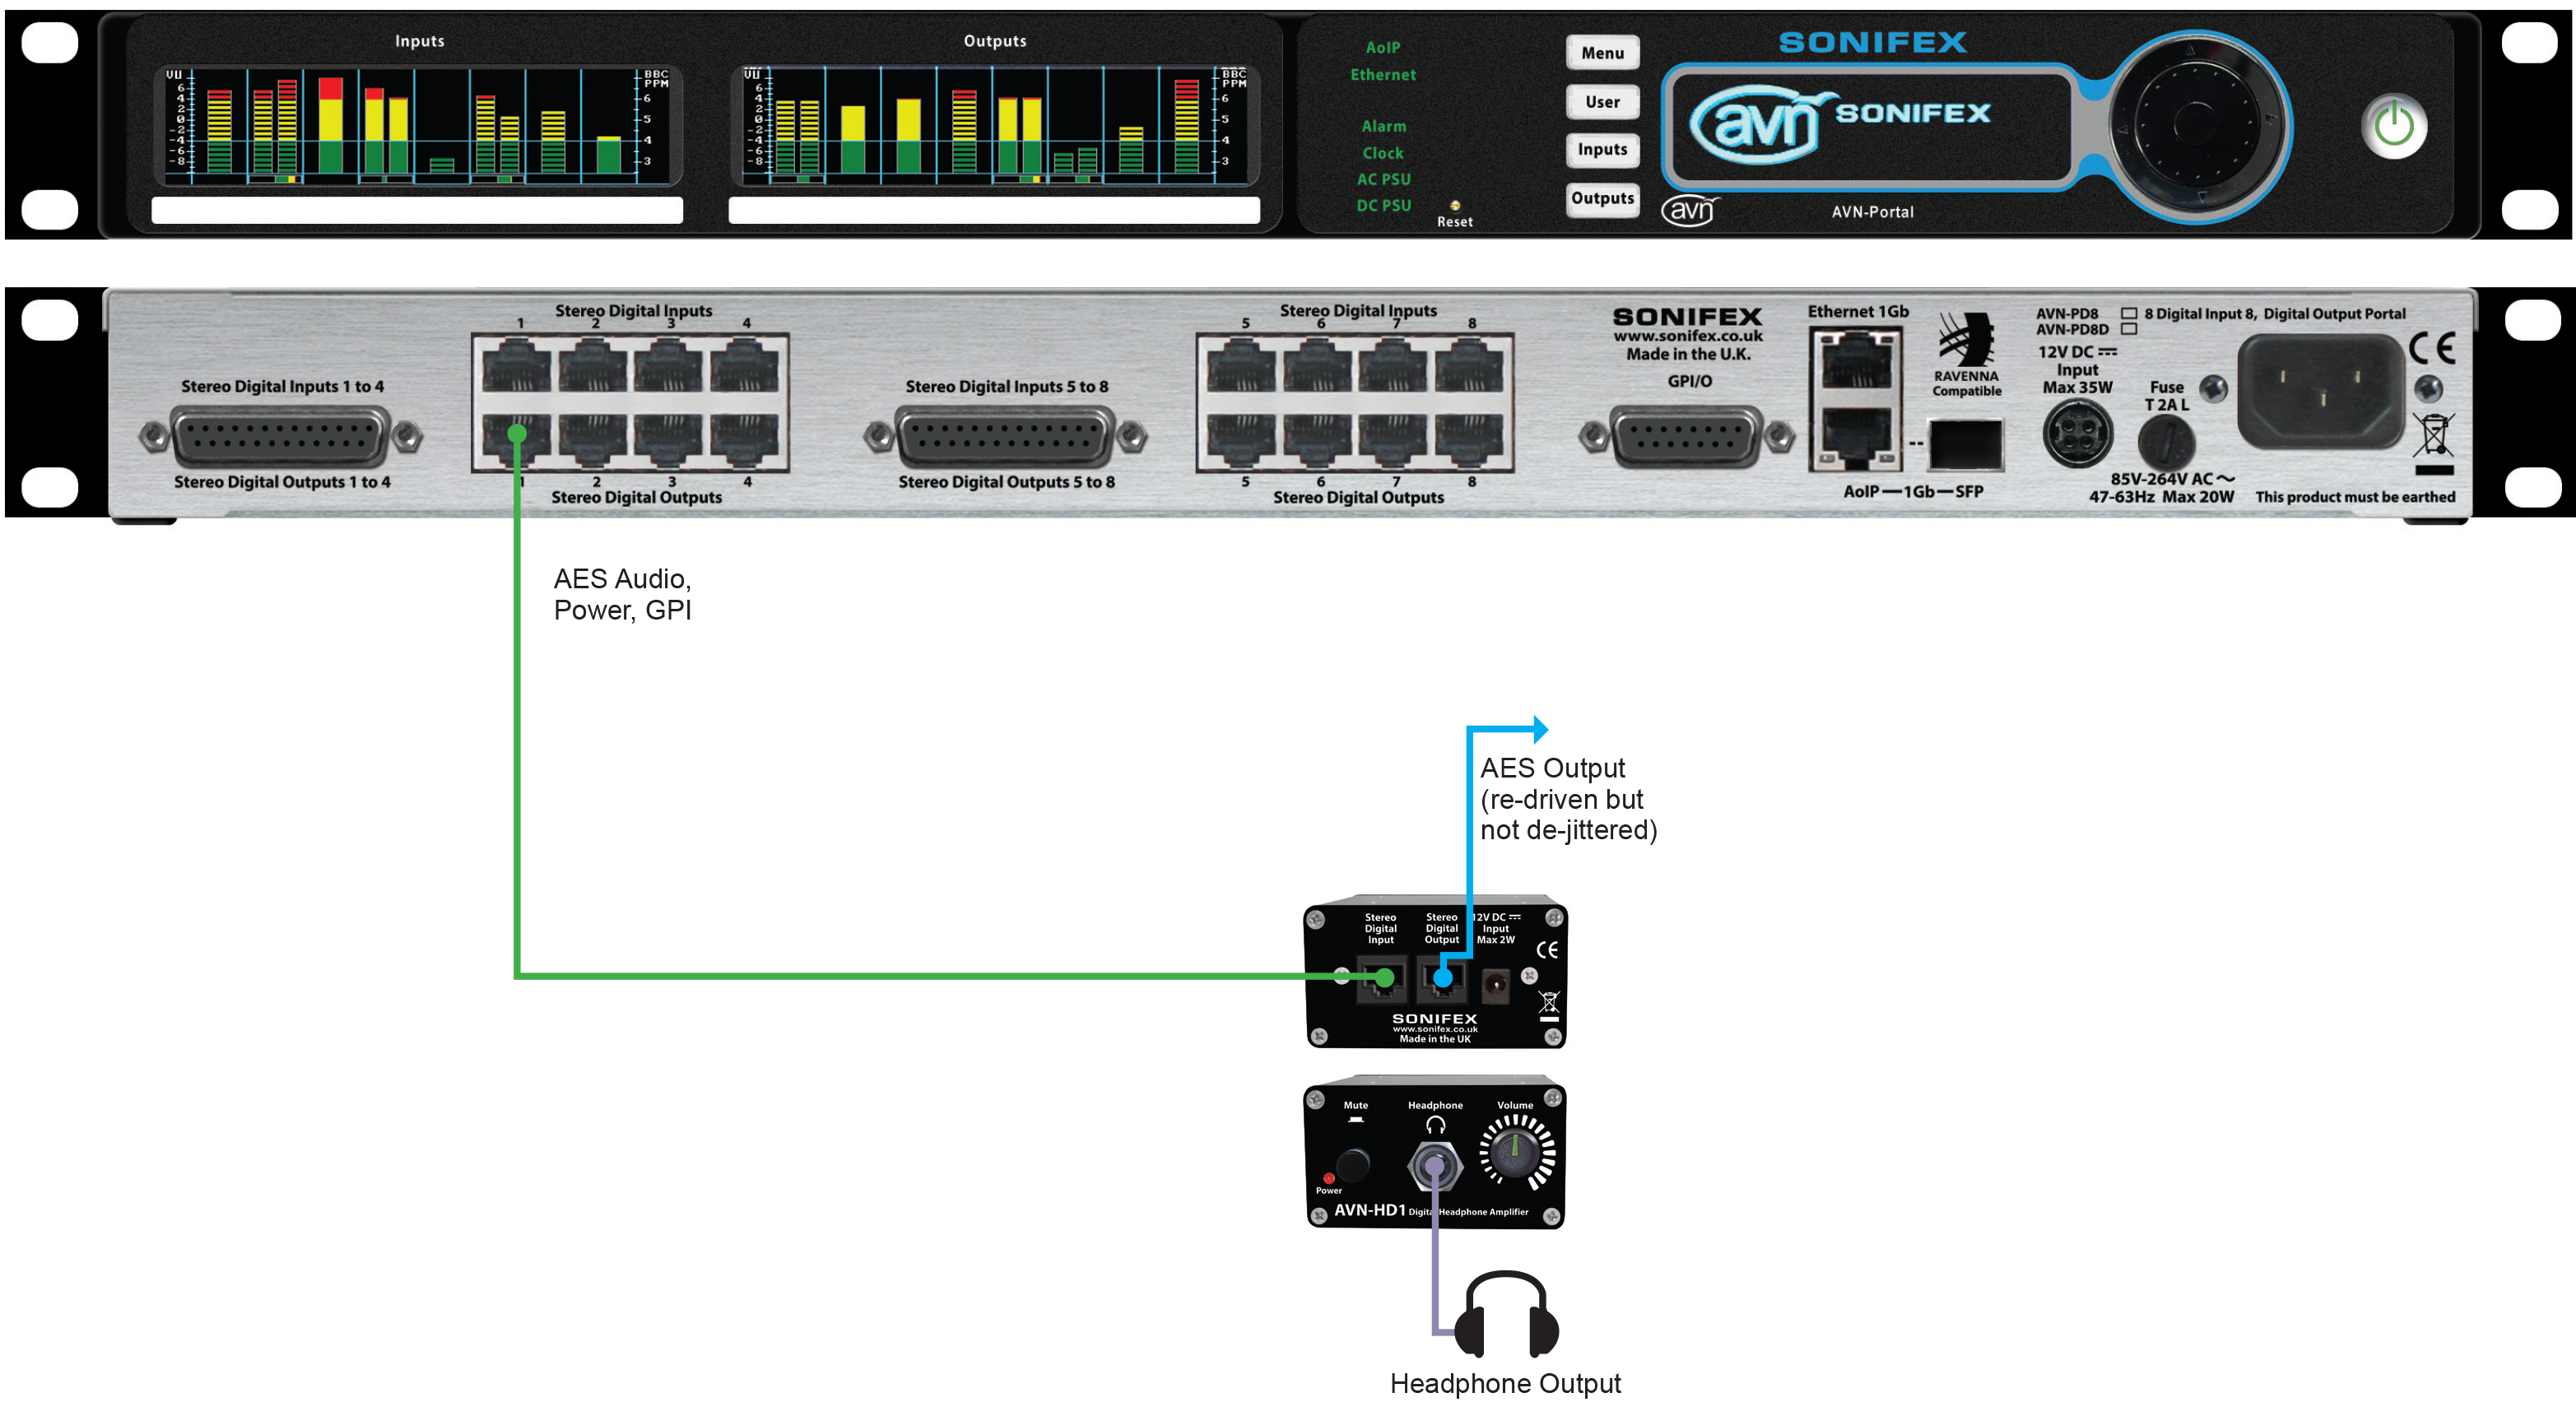 Sonifex AVN-PD8, 8 Stereo Digital Line Inputs & Outputs